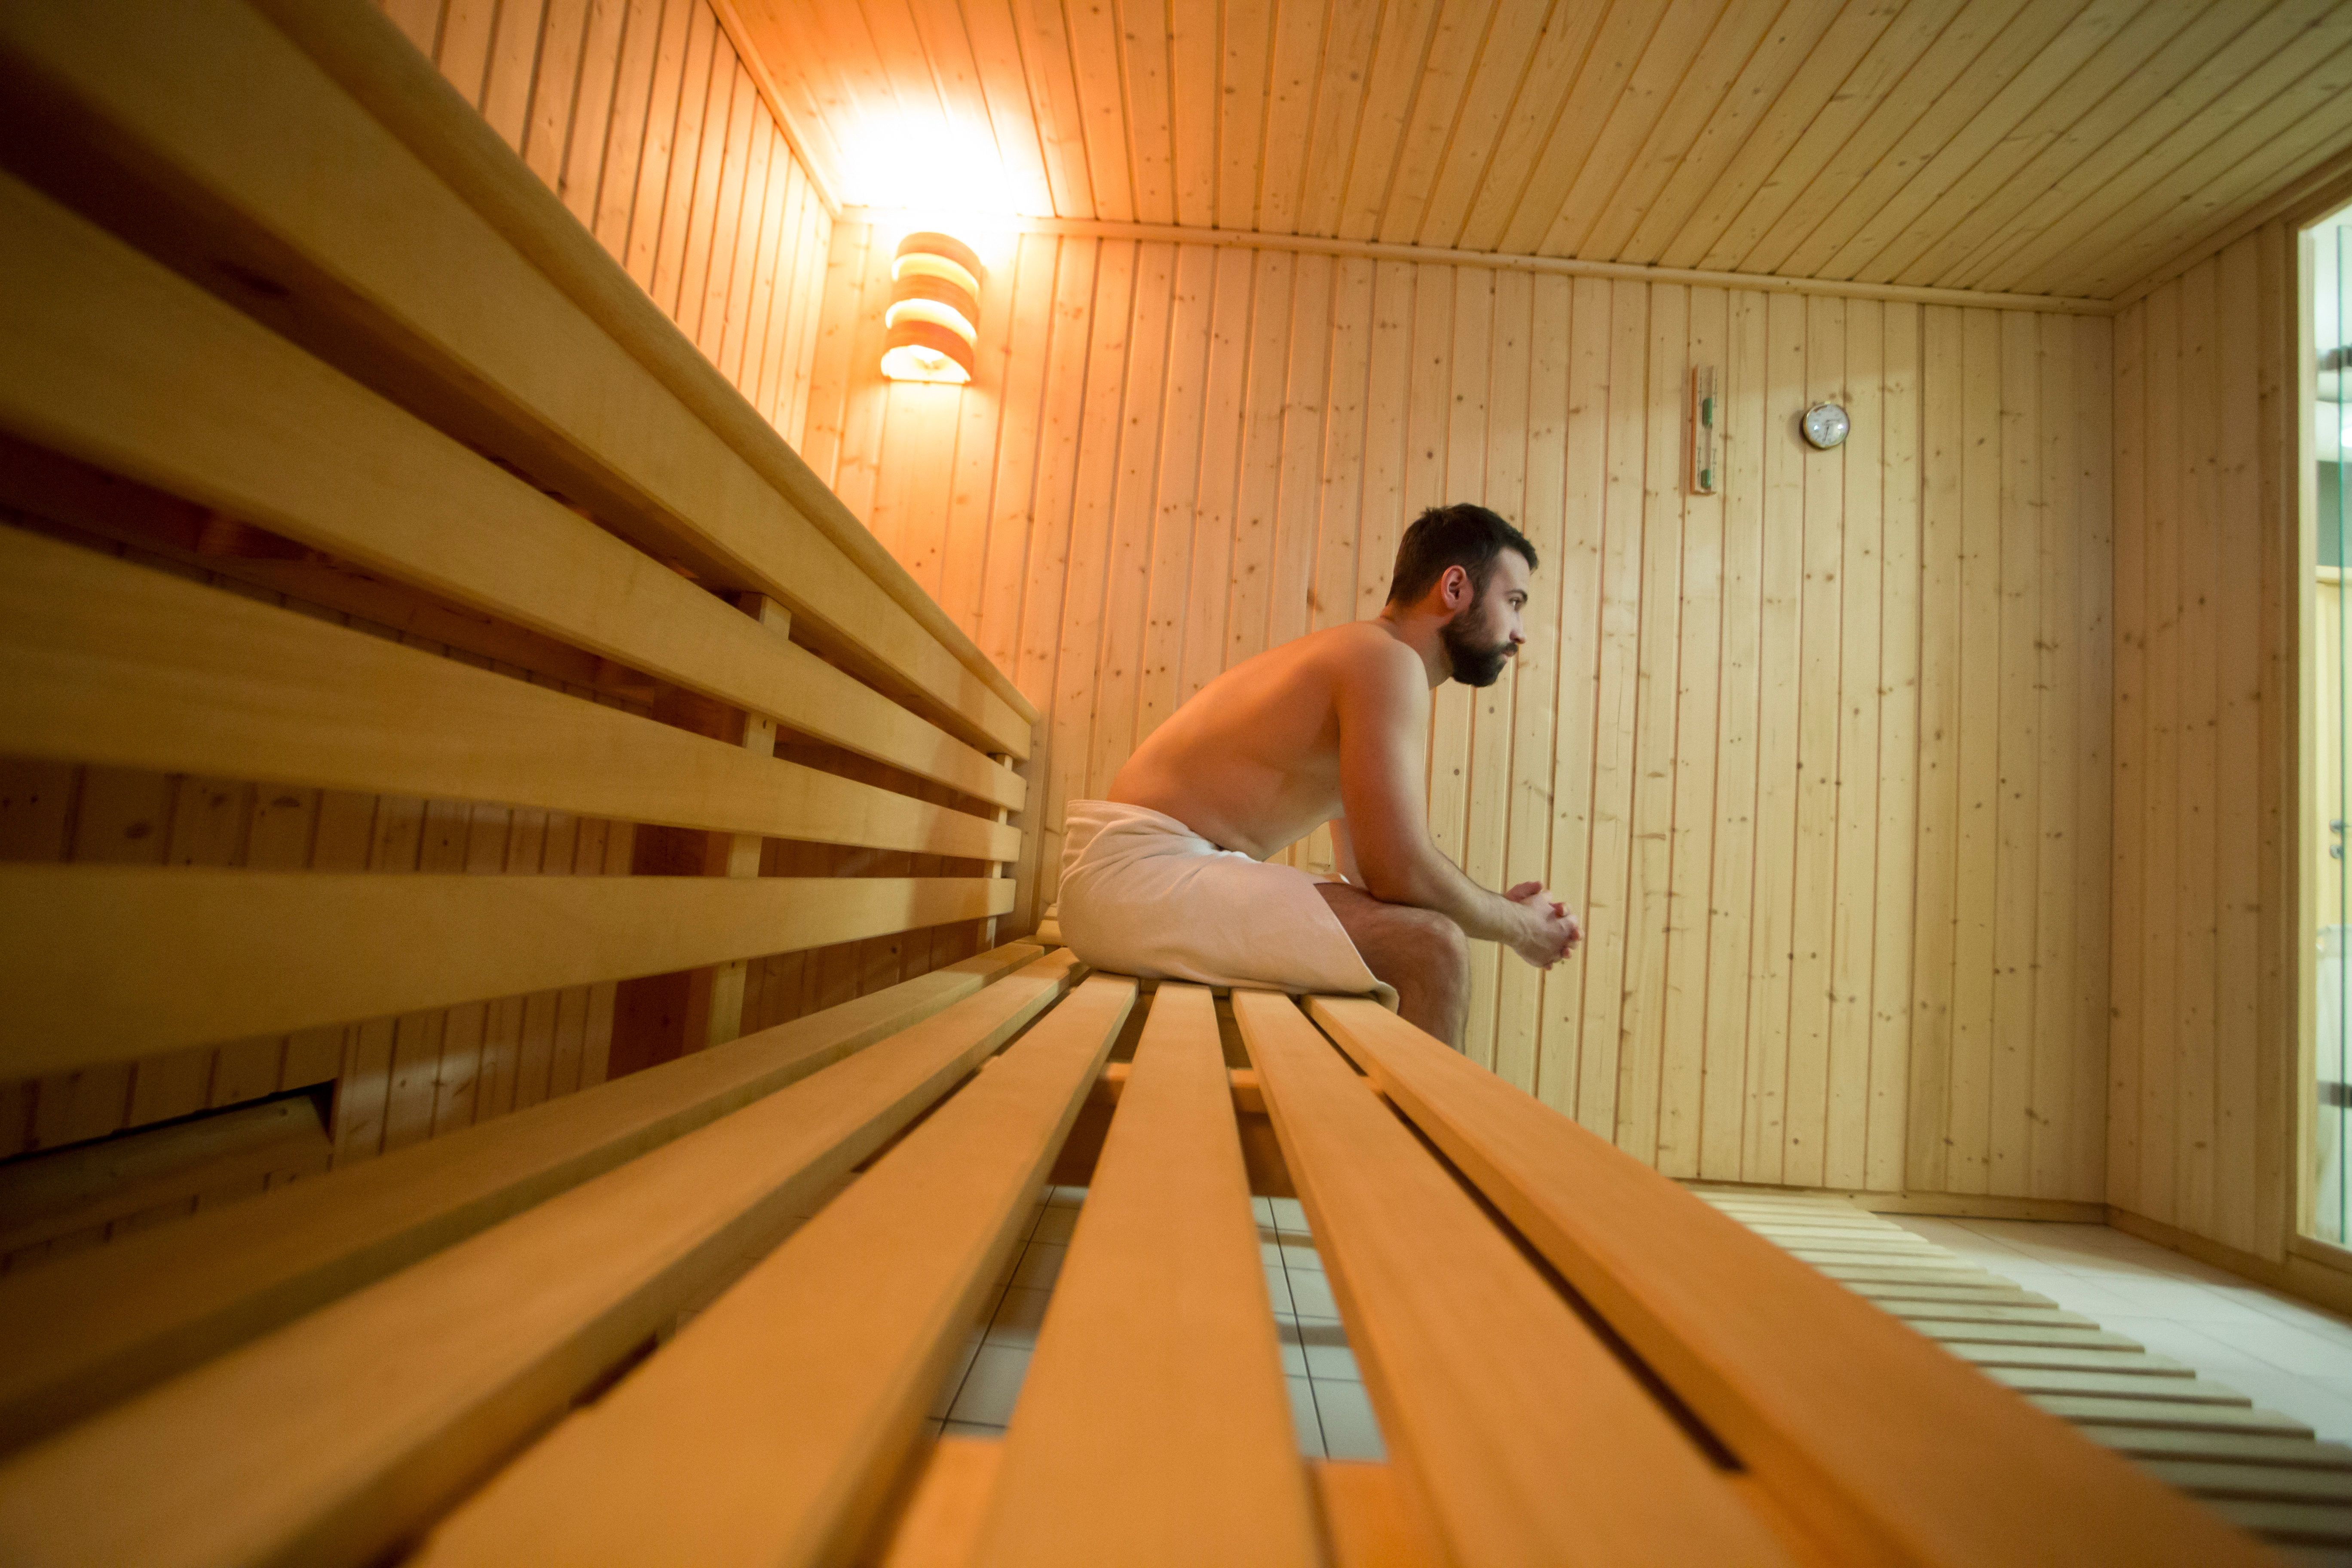 Young man relaxing in a Finnish sauna. About 25 years old, Caucasian male.